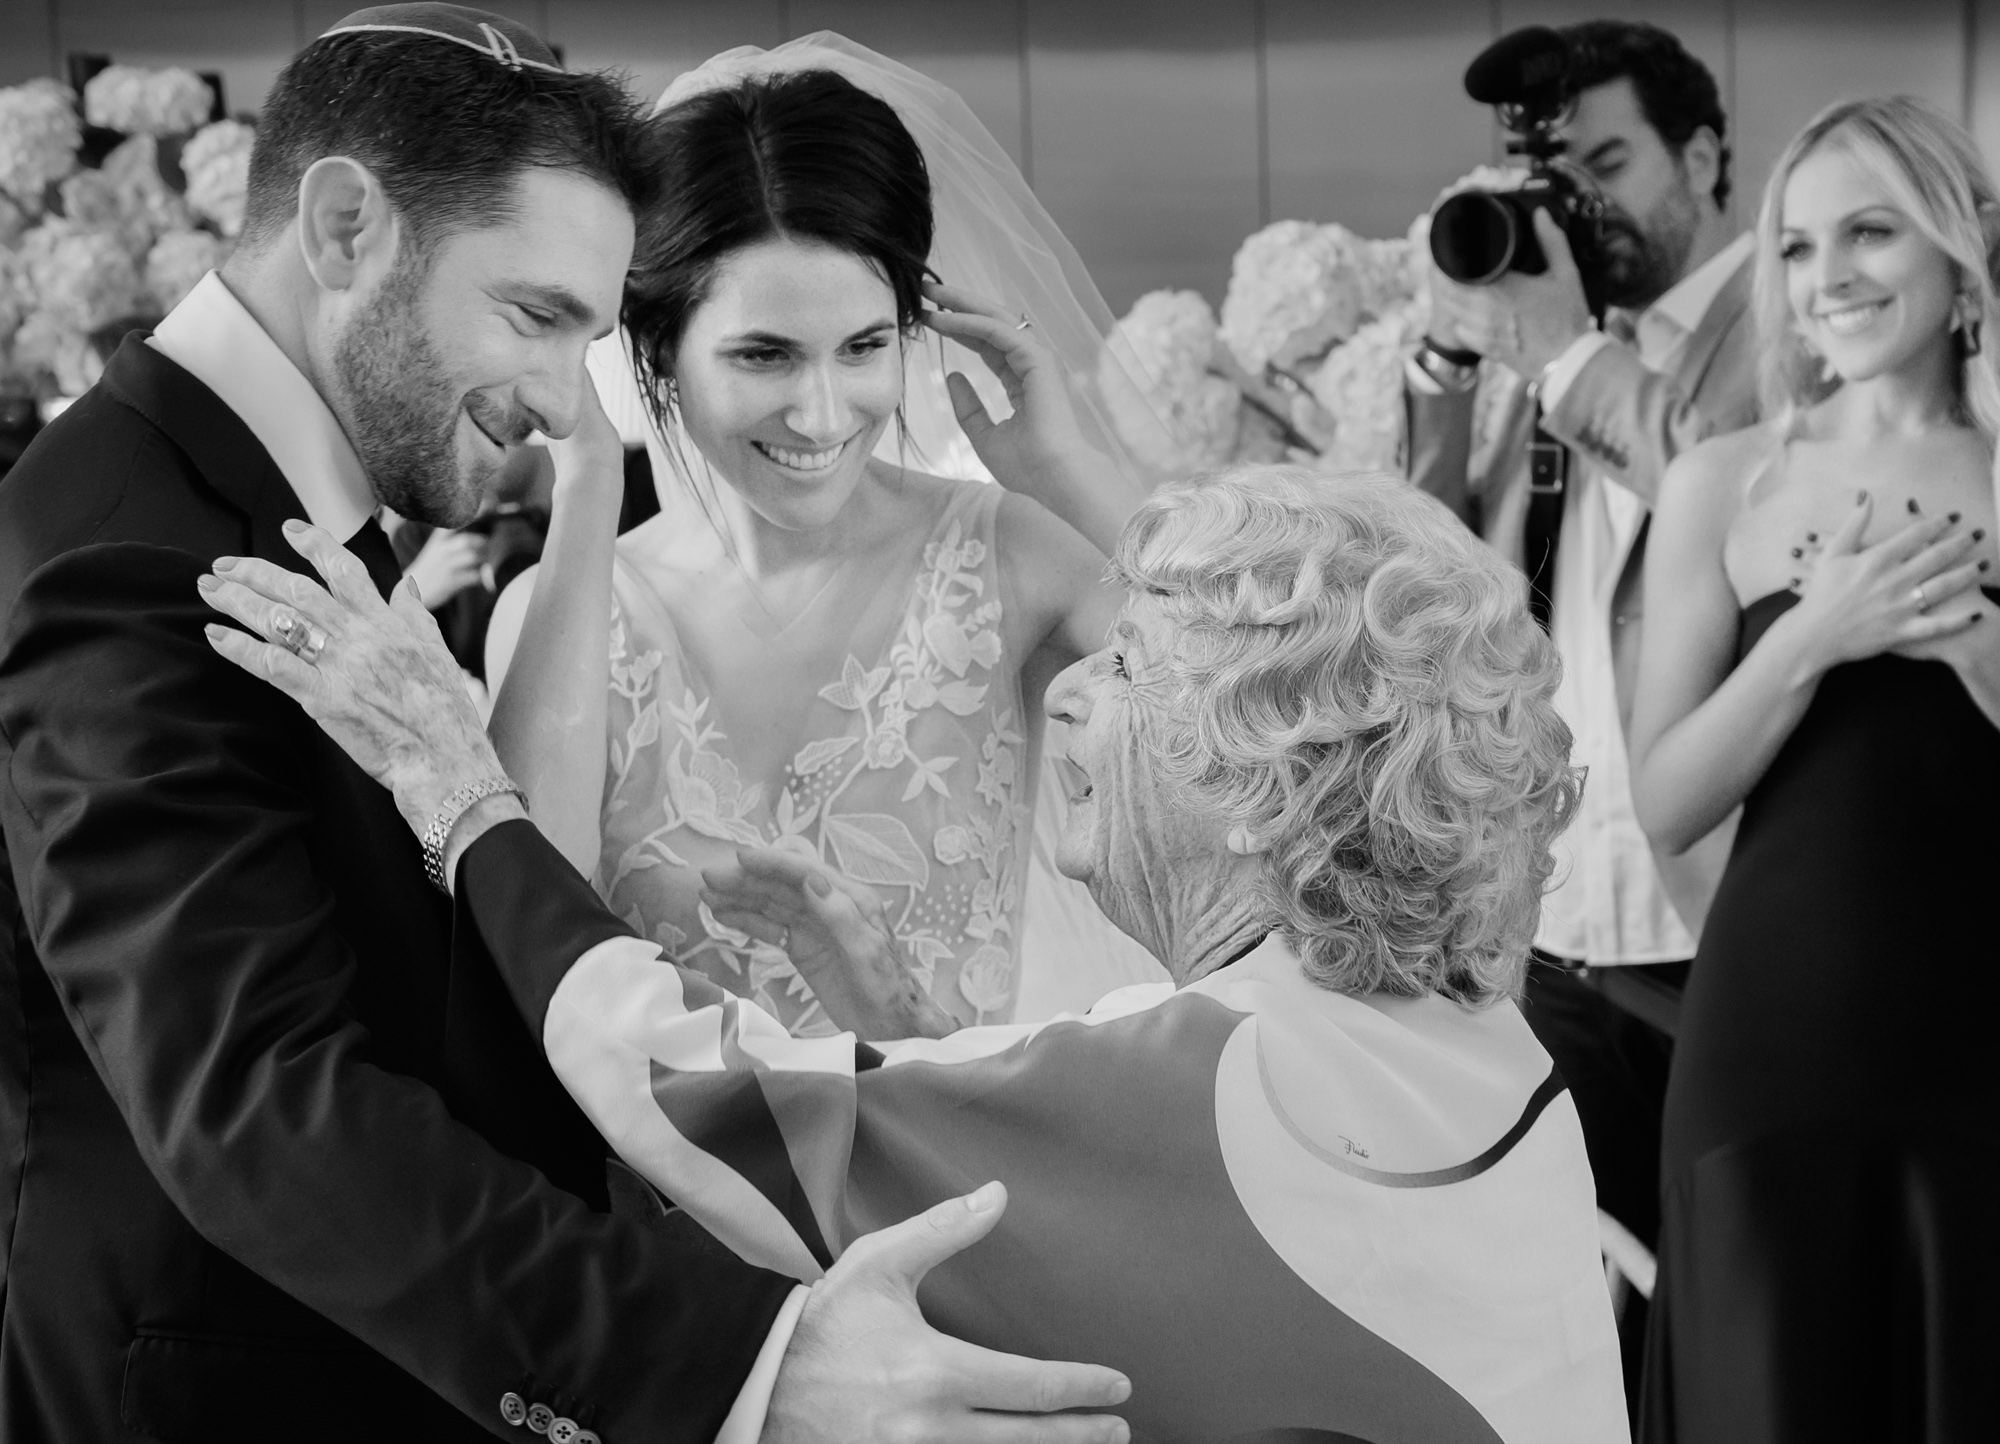 Touching photo of bride and groom greeting older guest  - photo by Marcus Bell